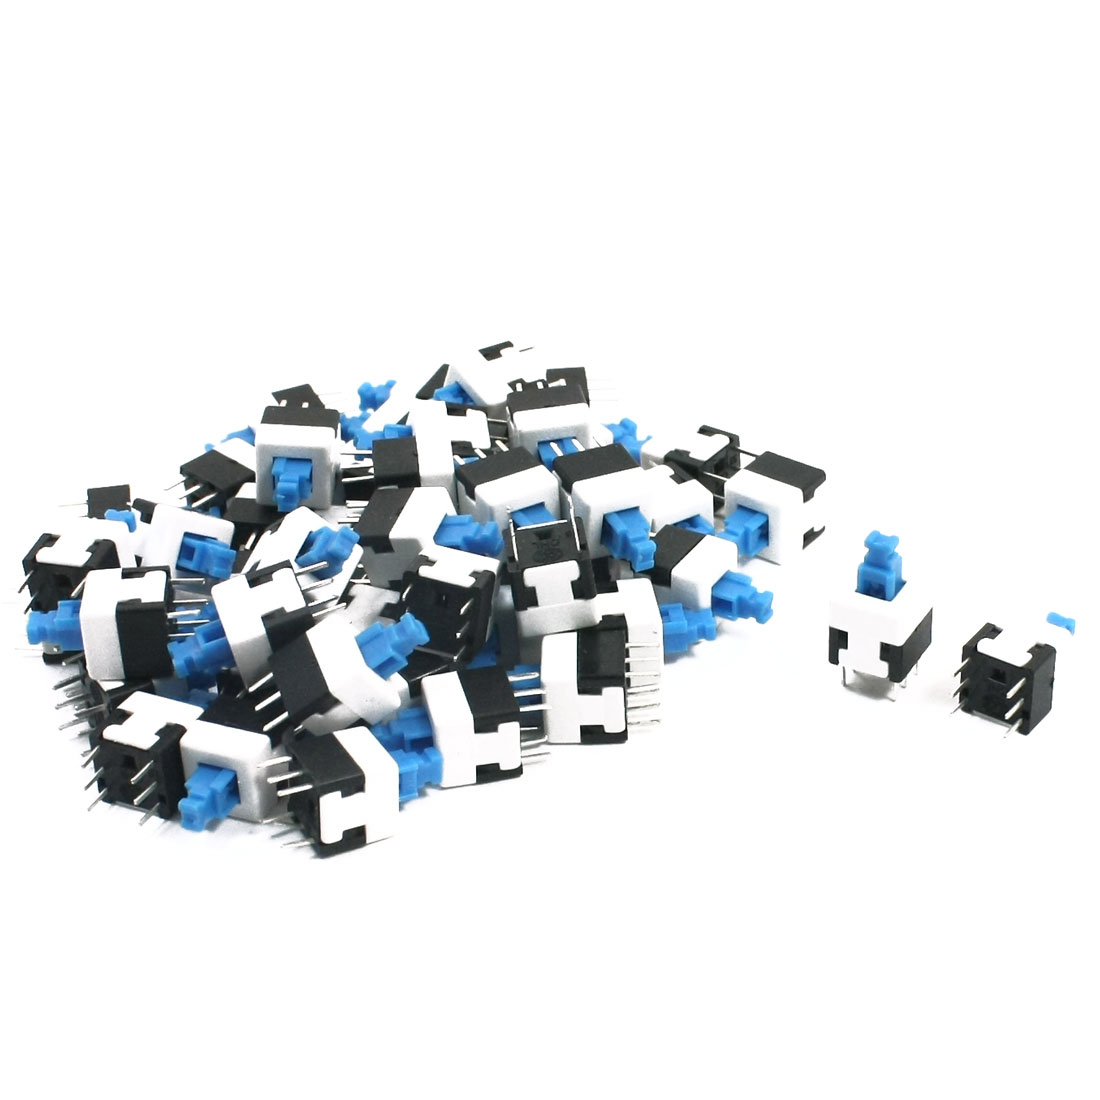 50Pcs 6 Pin Mounted 8mmx8mm Self-Locking Push Button Tact Switch